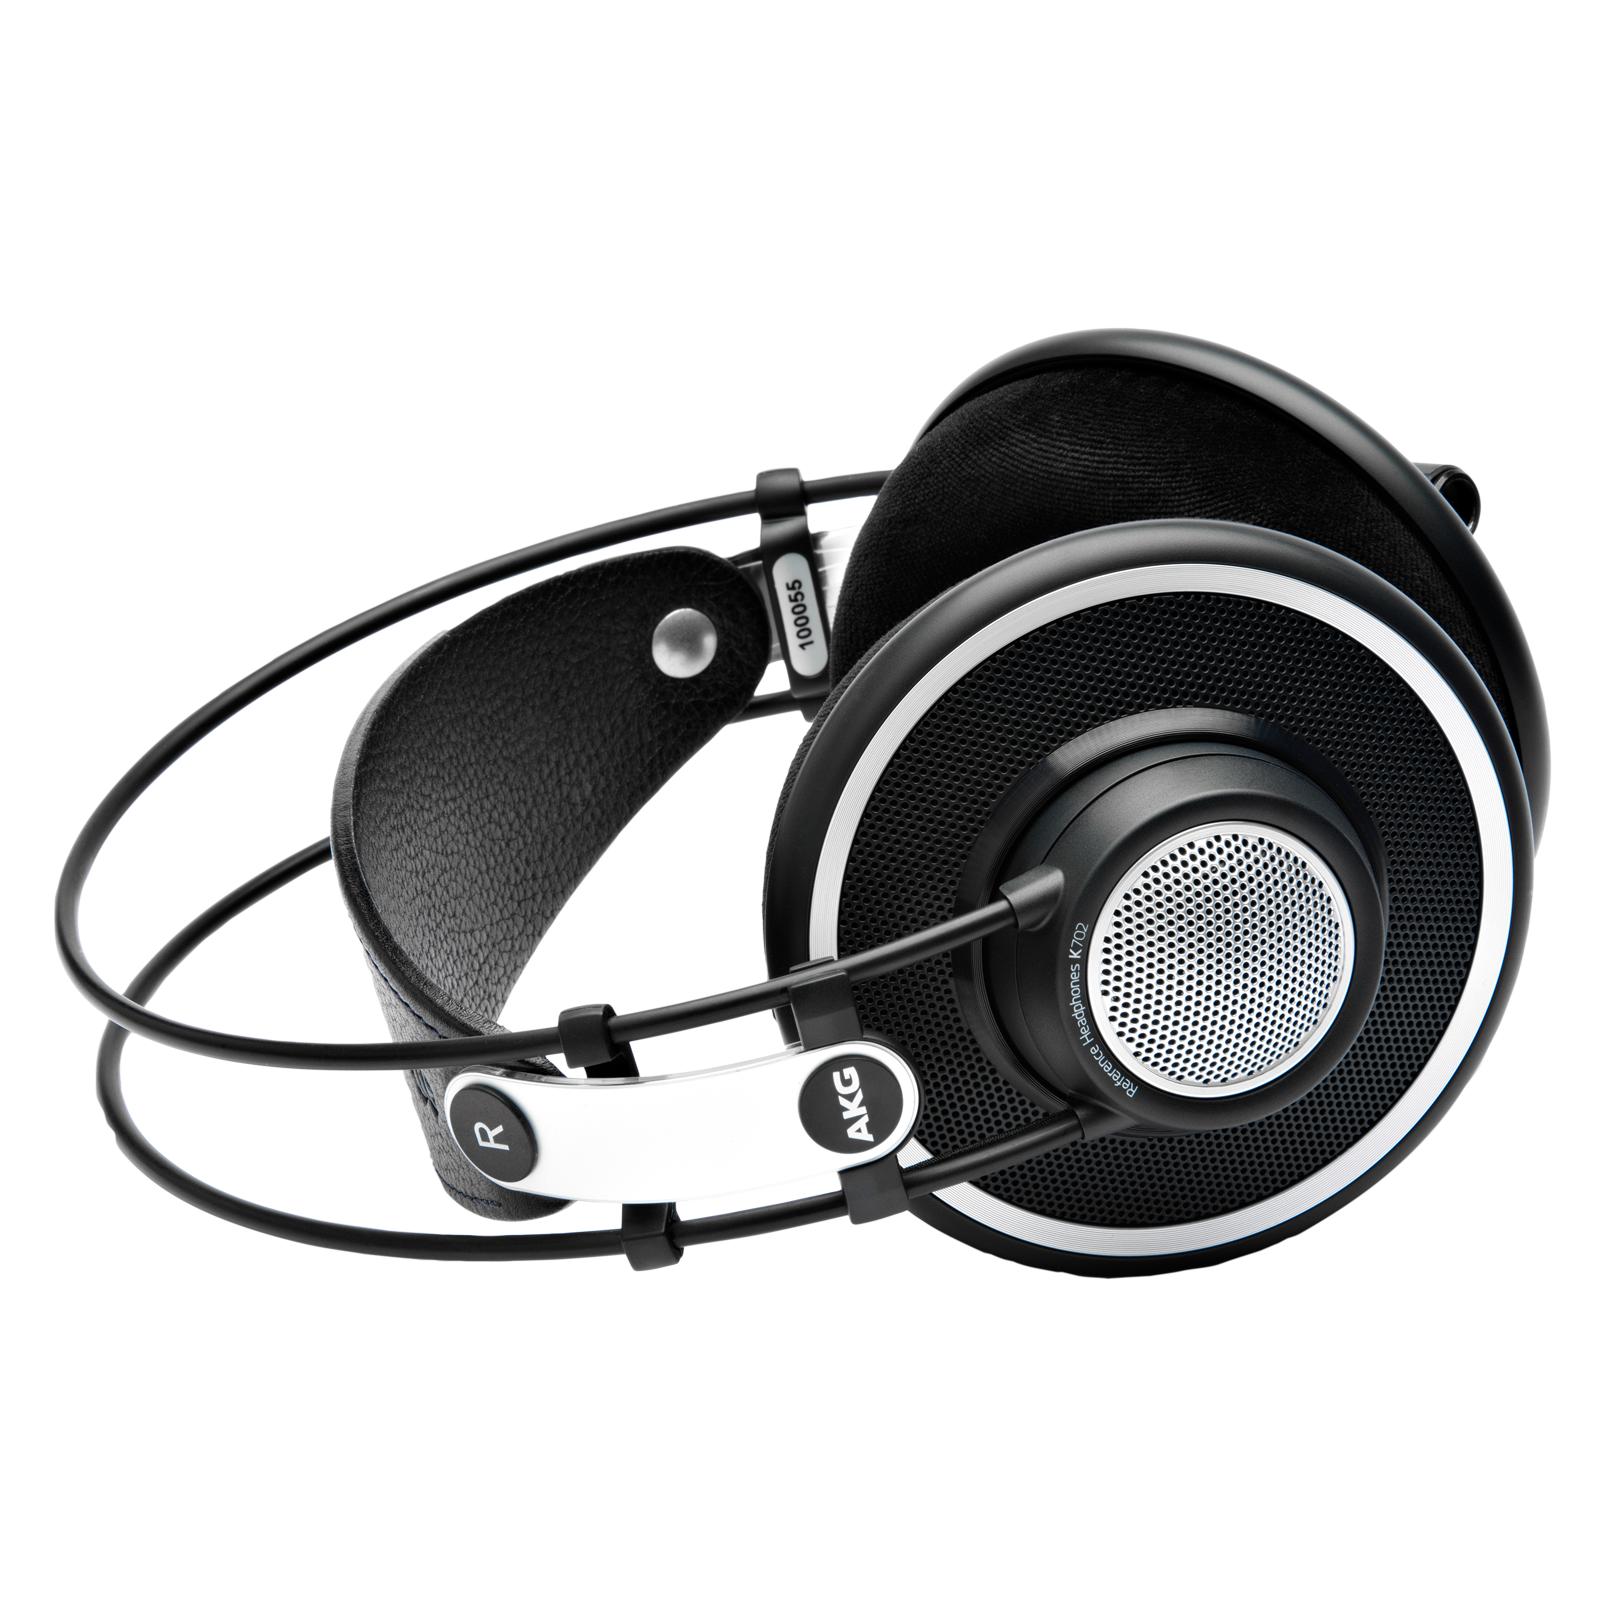 K702 - Black - Reference studio headphones - Detailshot 3